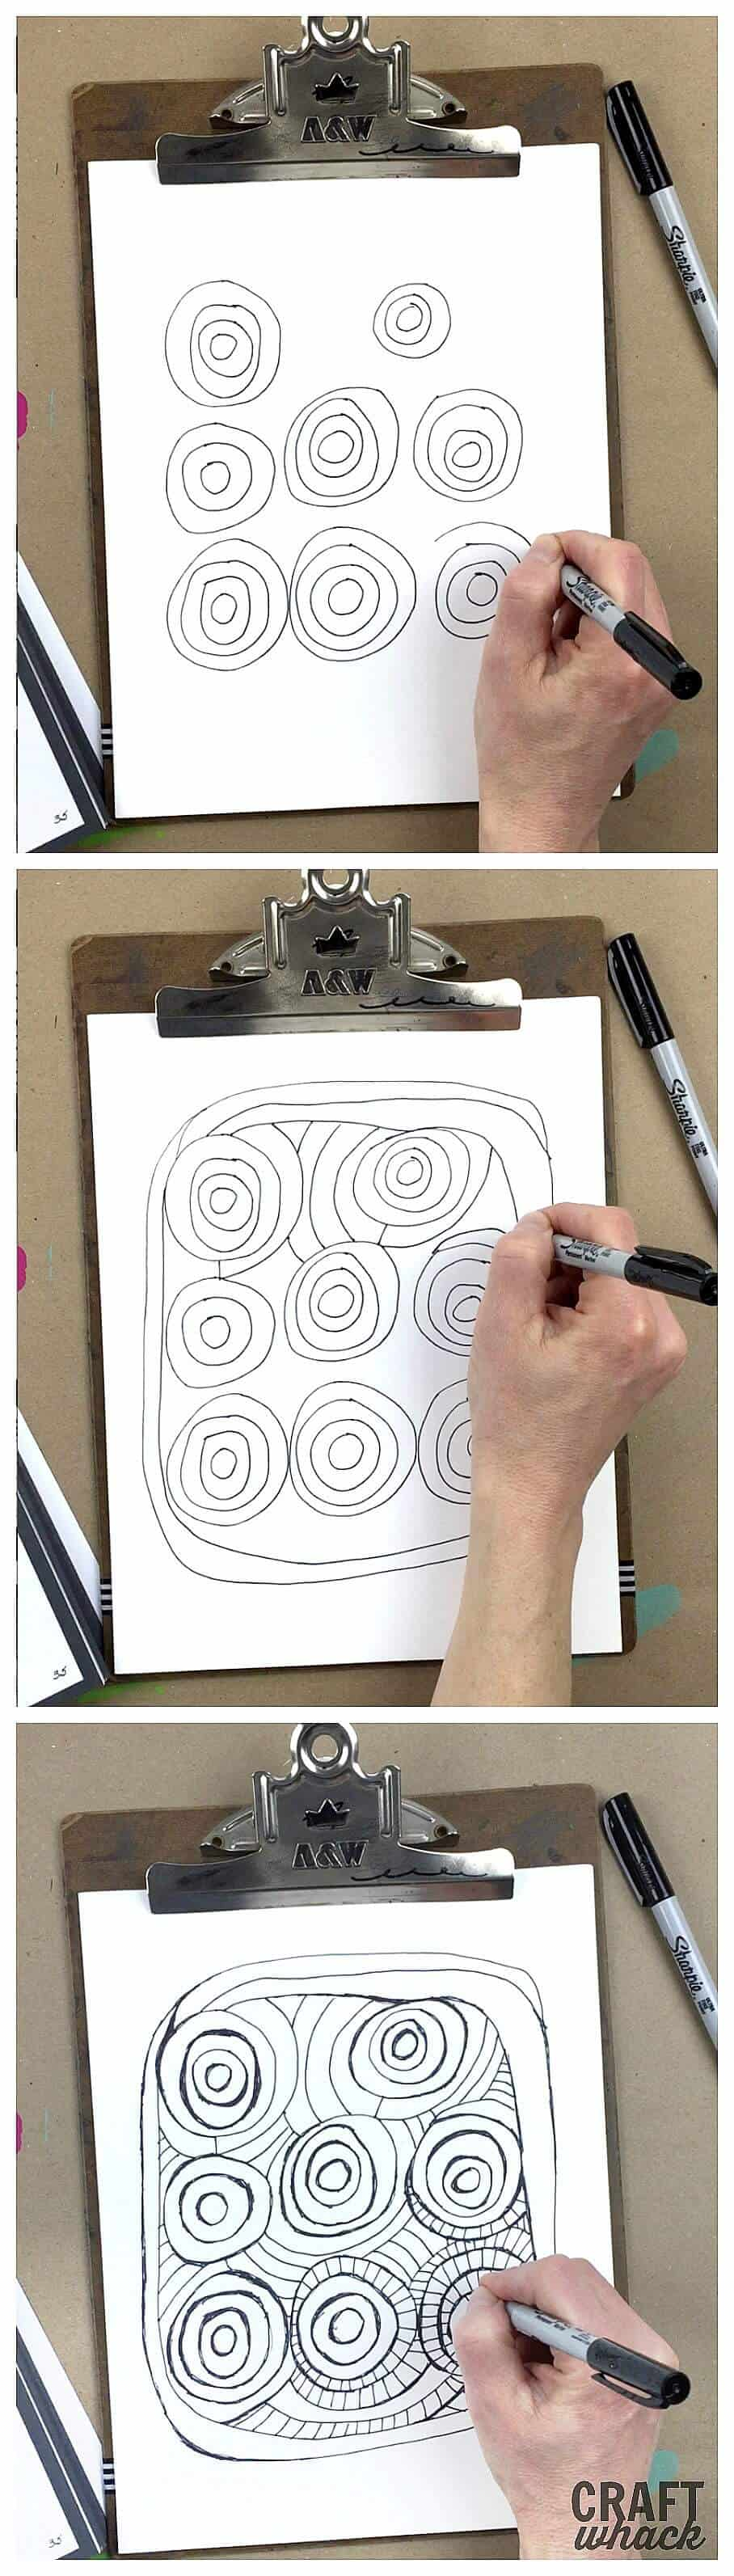 How to Draw a Really Cool Coloring Page • Craftwhack